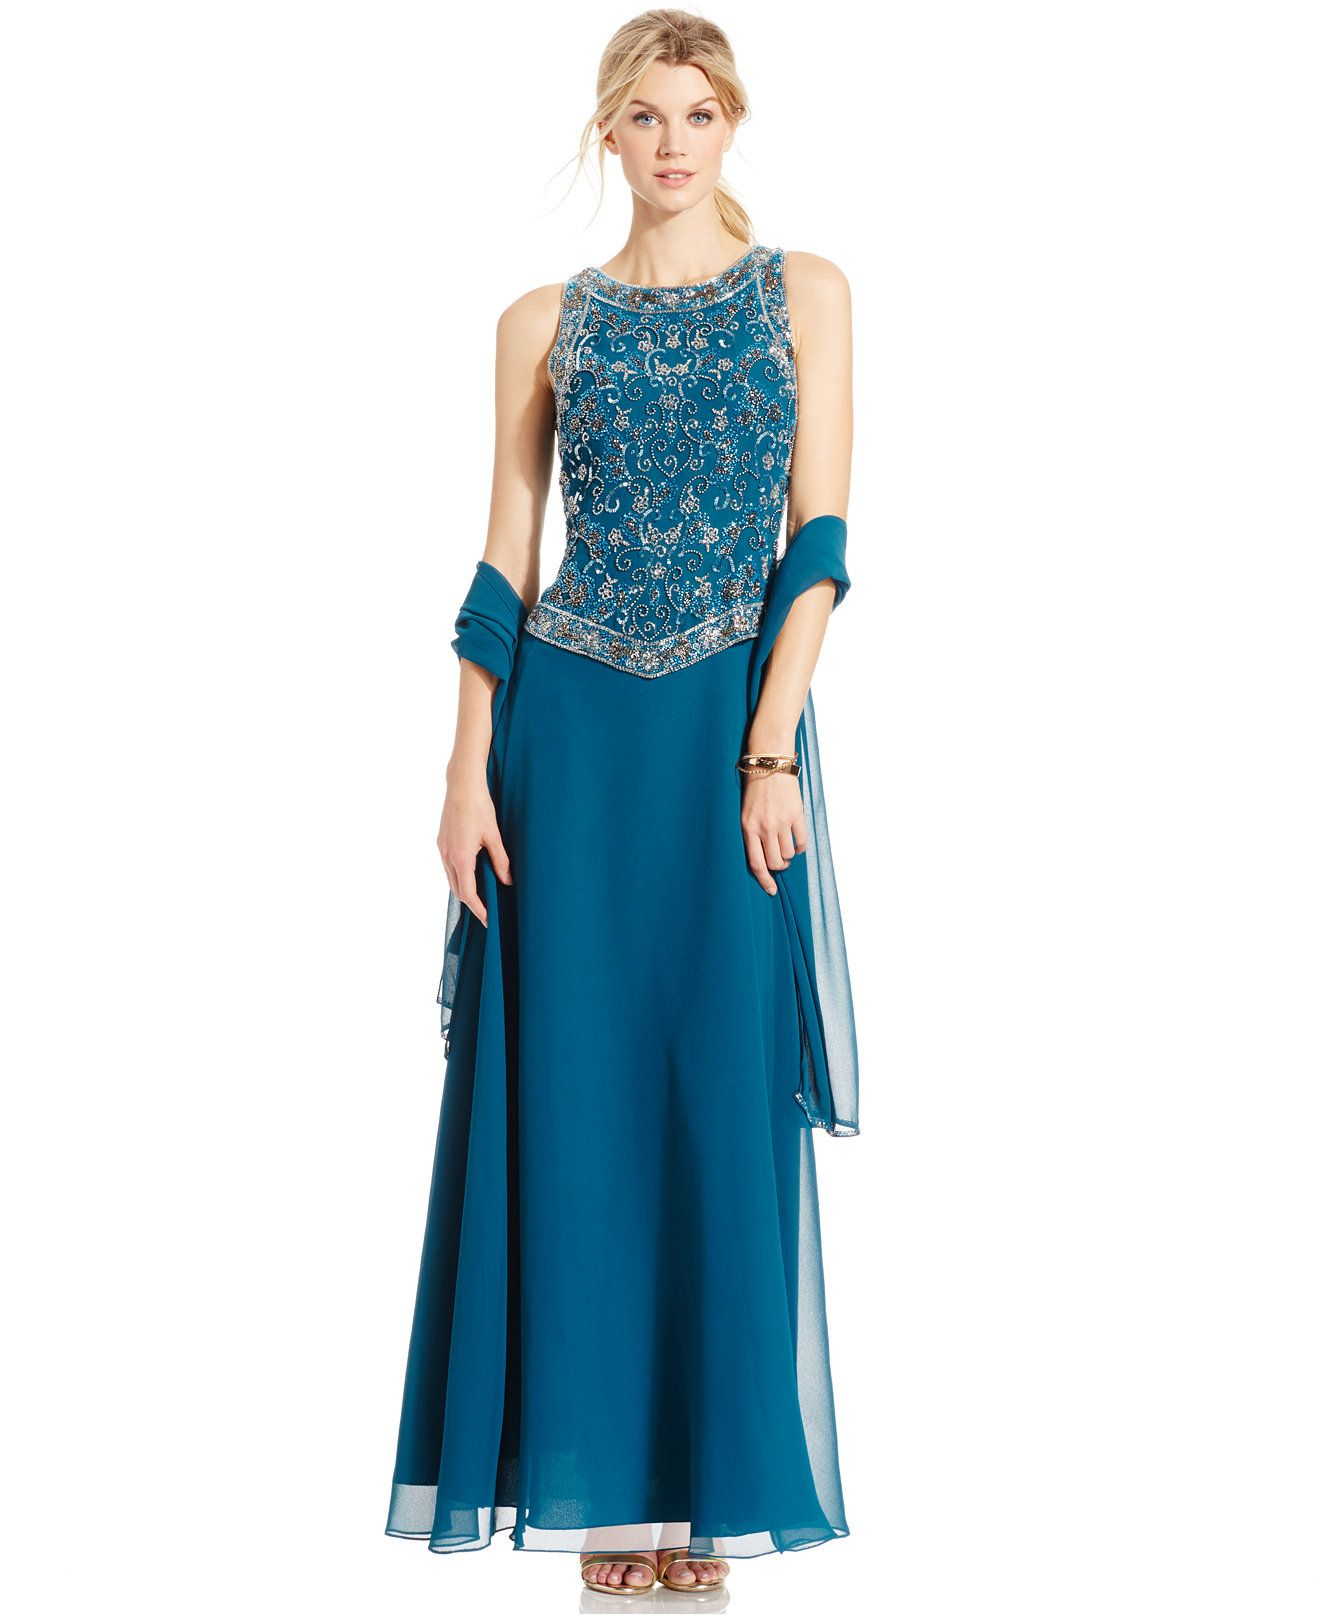 J Kara Beaded Bodice Sleeveless Gown - at Macy\'s: Reg. $239.00 ...